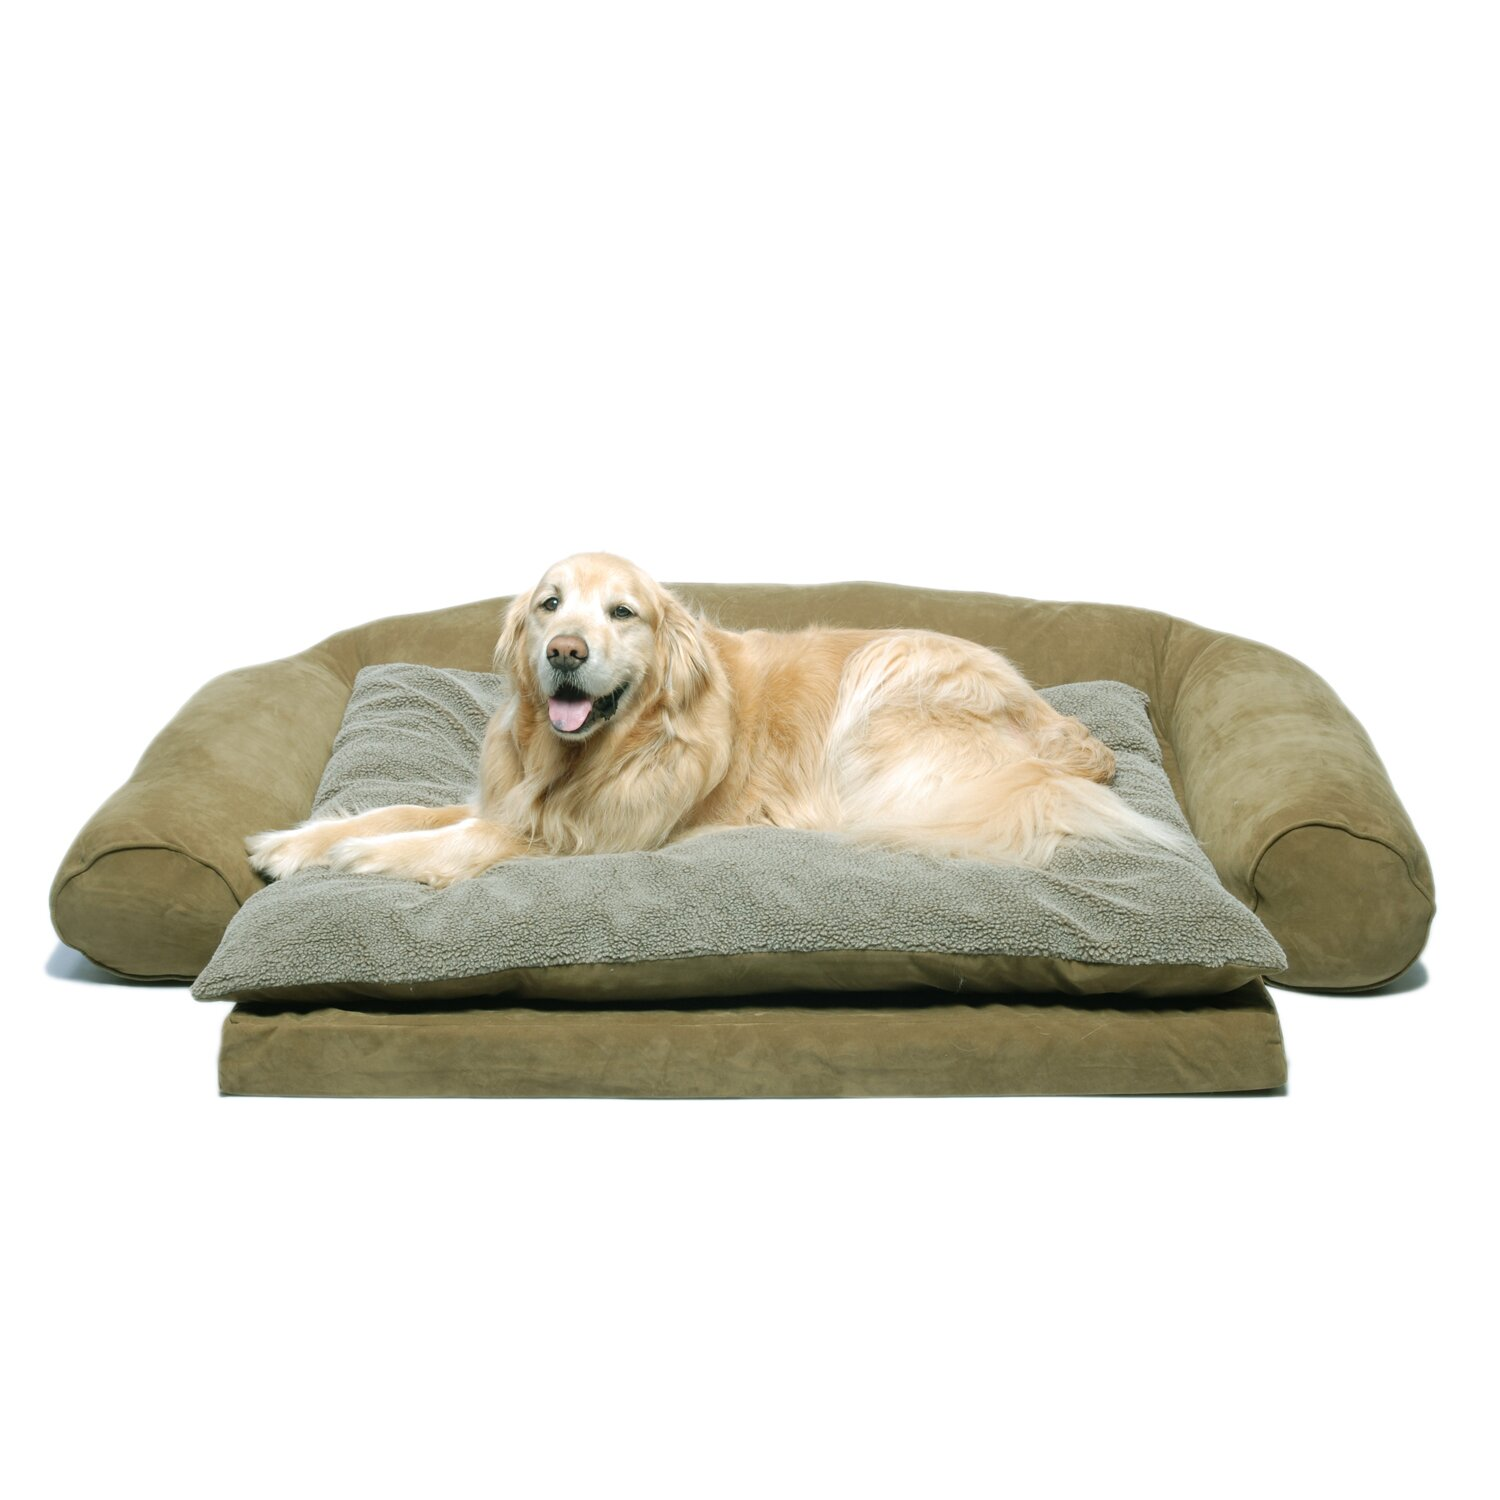 gray camo chew bed ballistics proof dog rn tuff indestructible beds